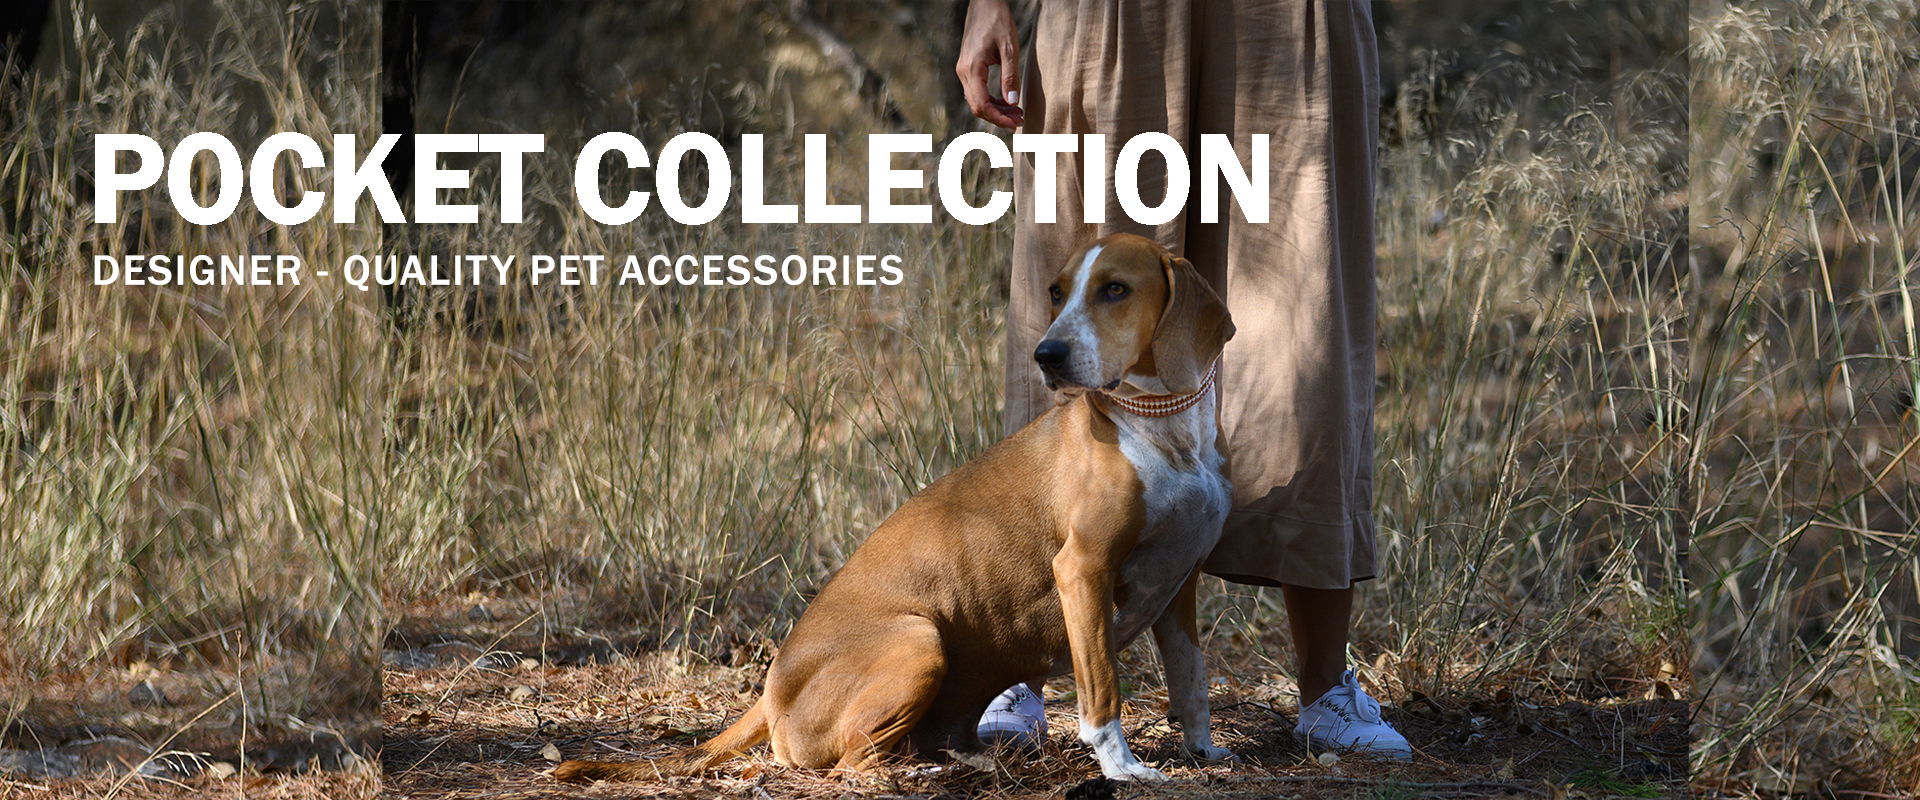 Pocket Collection | Designer-quality pet accessories by zikos